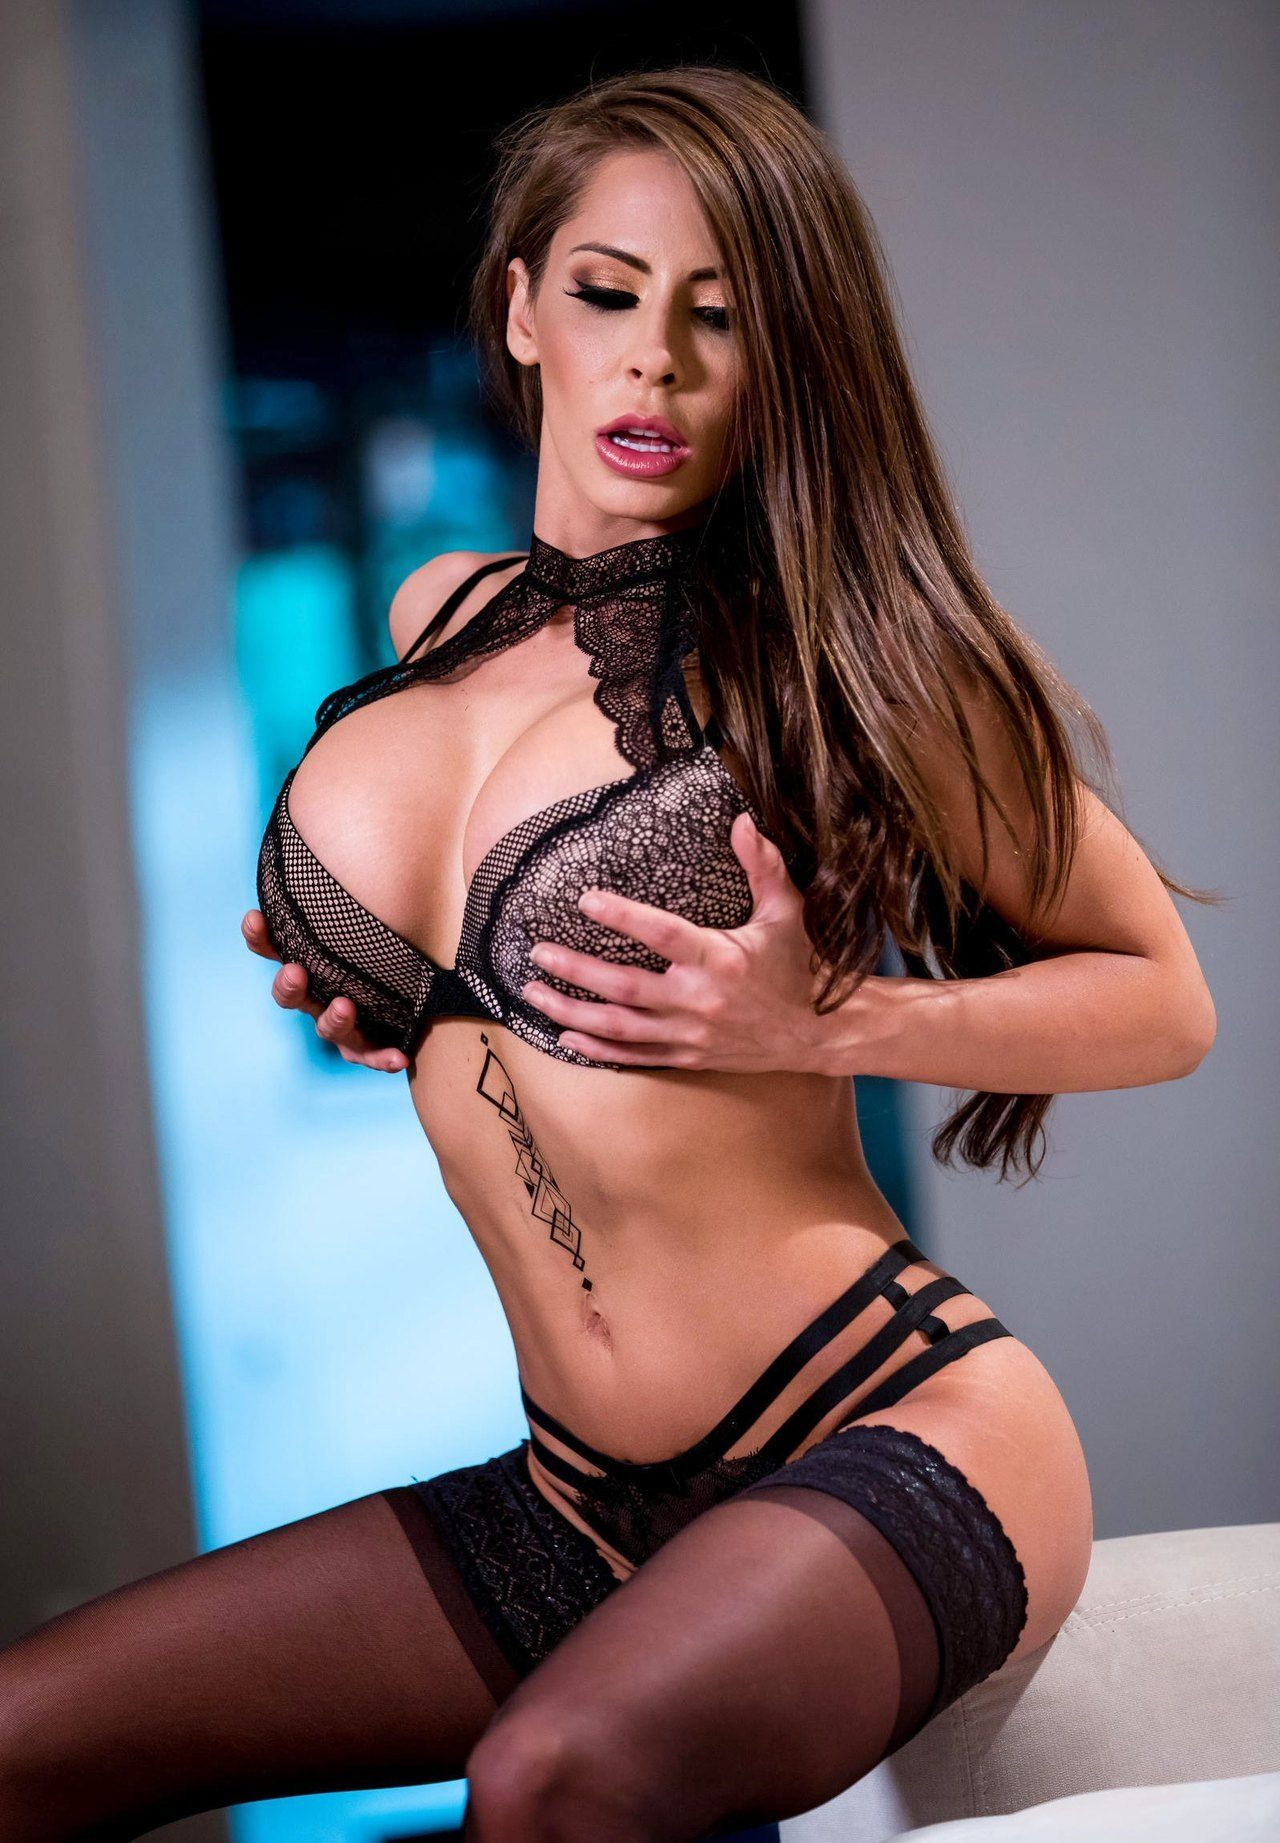 Madison Ivy Picture Gallery - page 3